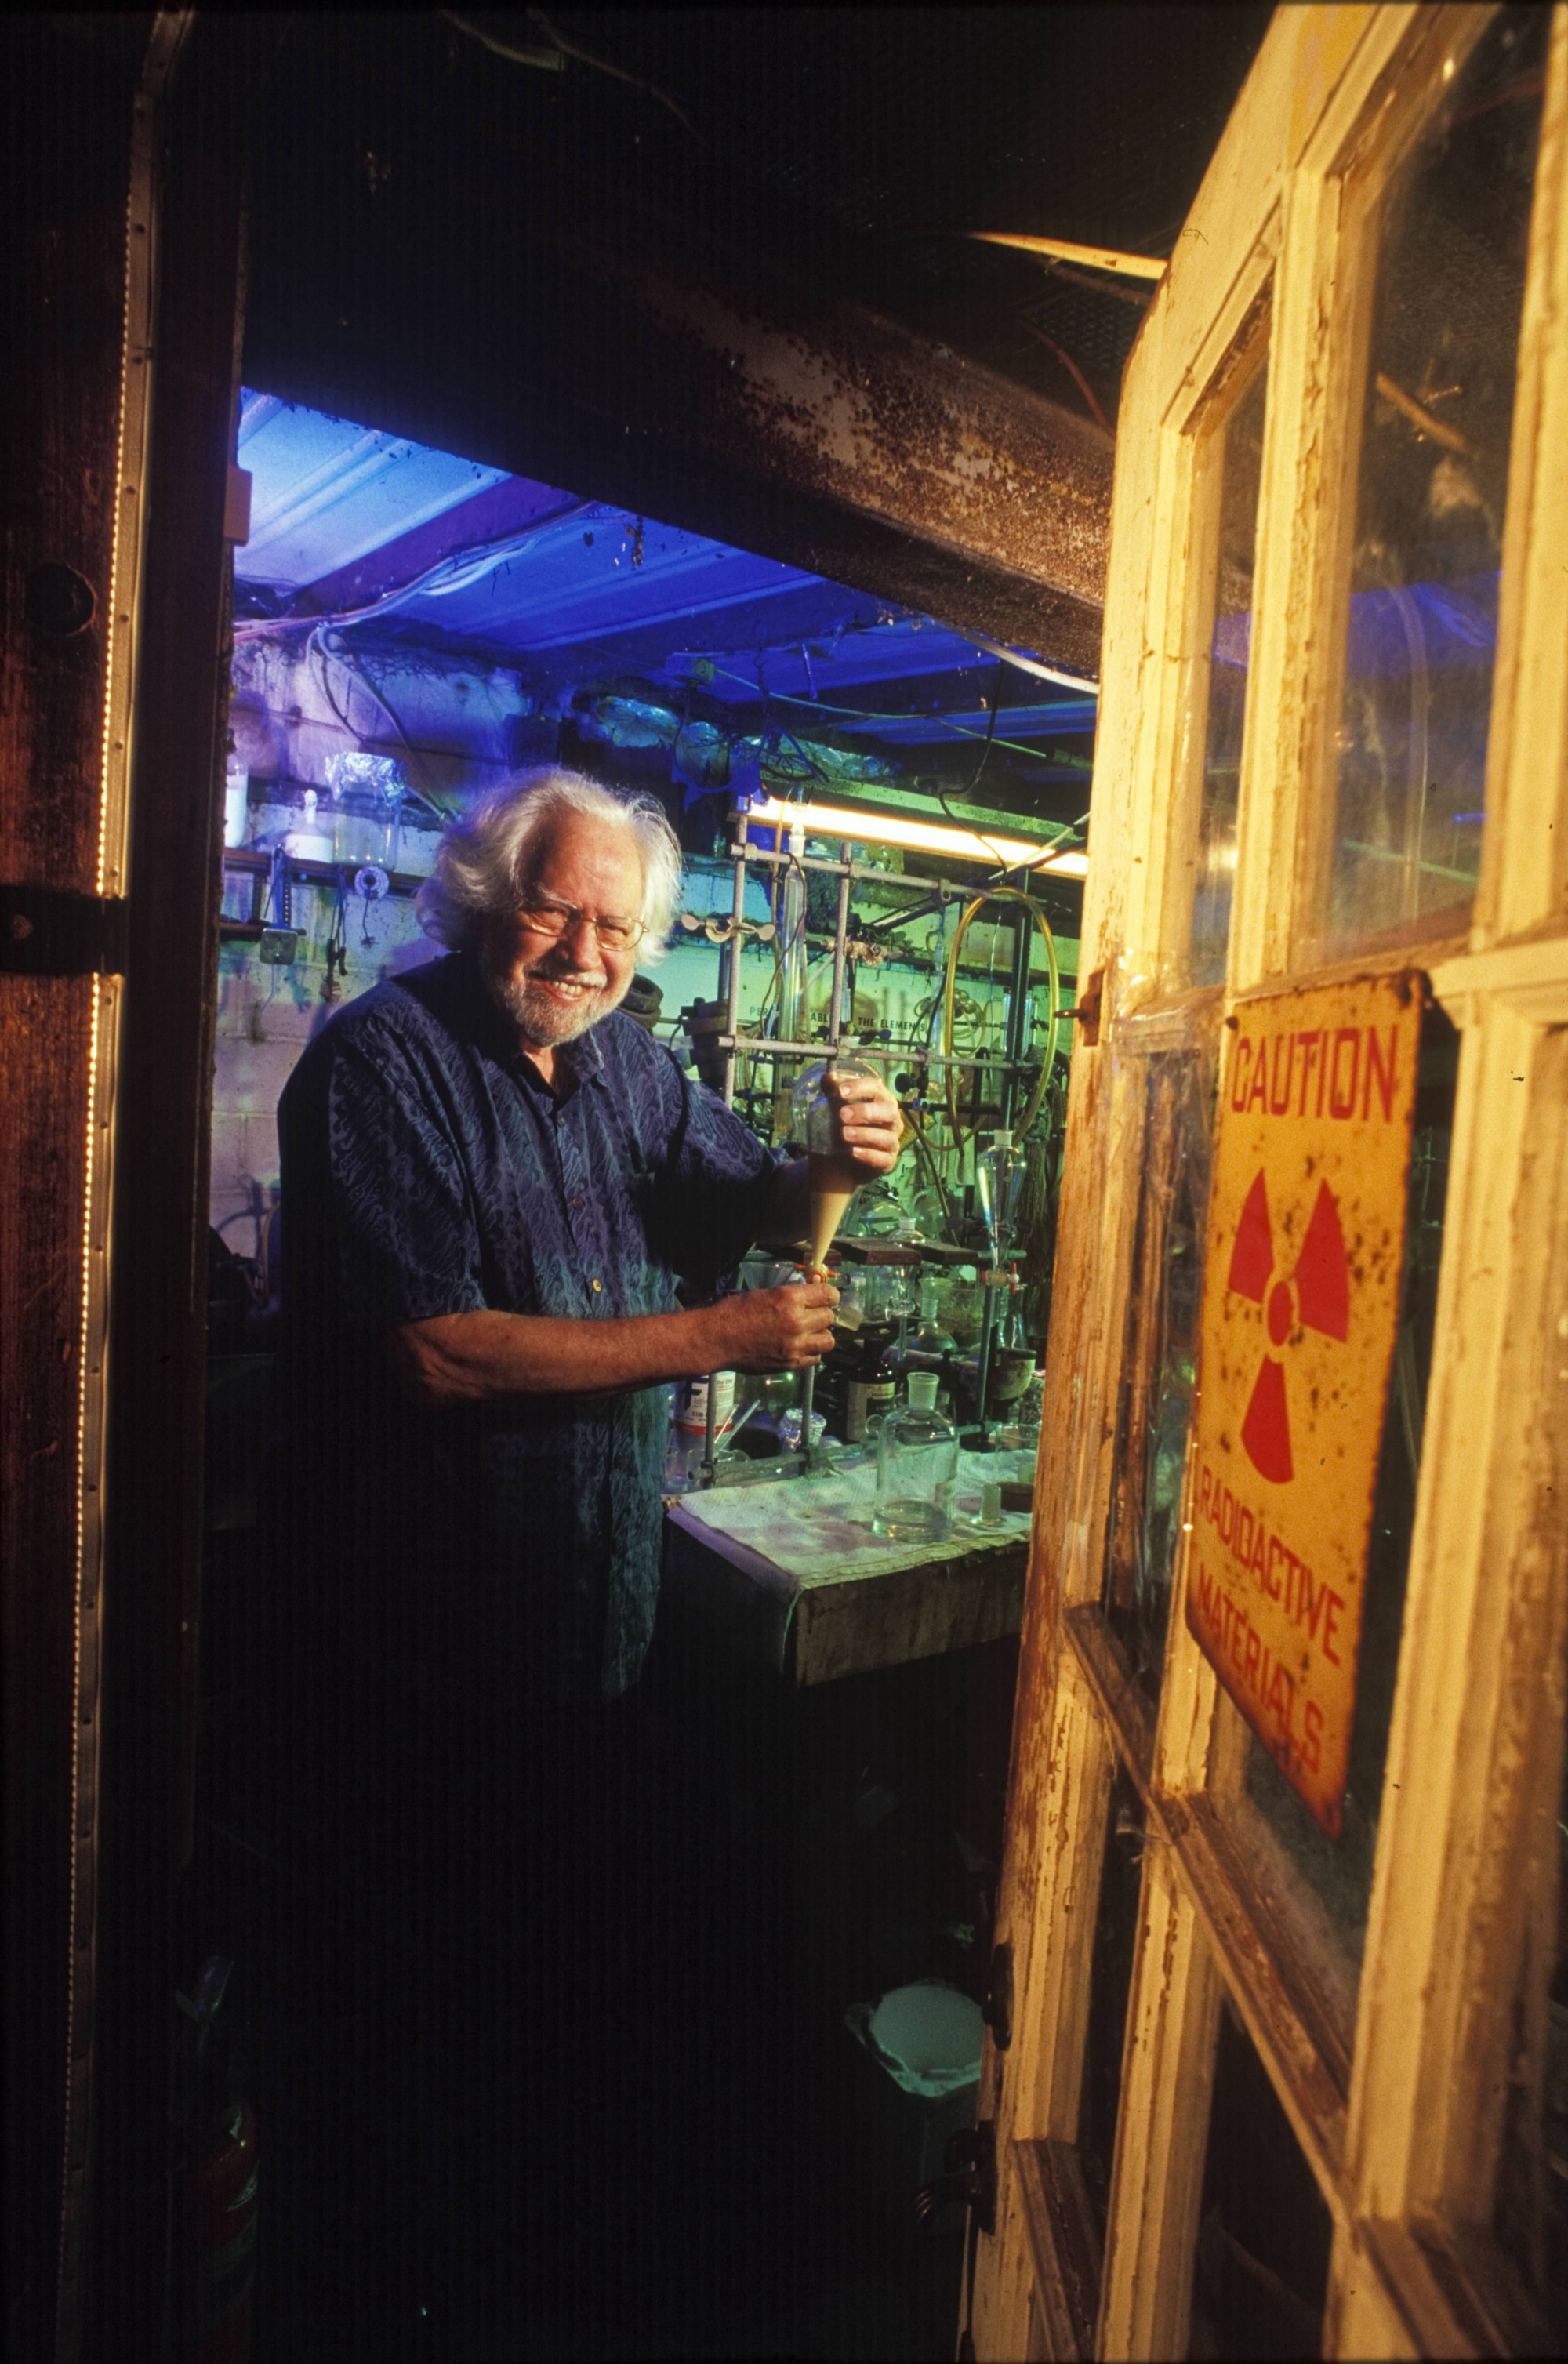 This genius chemist spent 50 years creating psychedelic drugs in his home lab…for a good cause